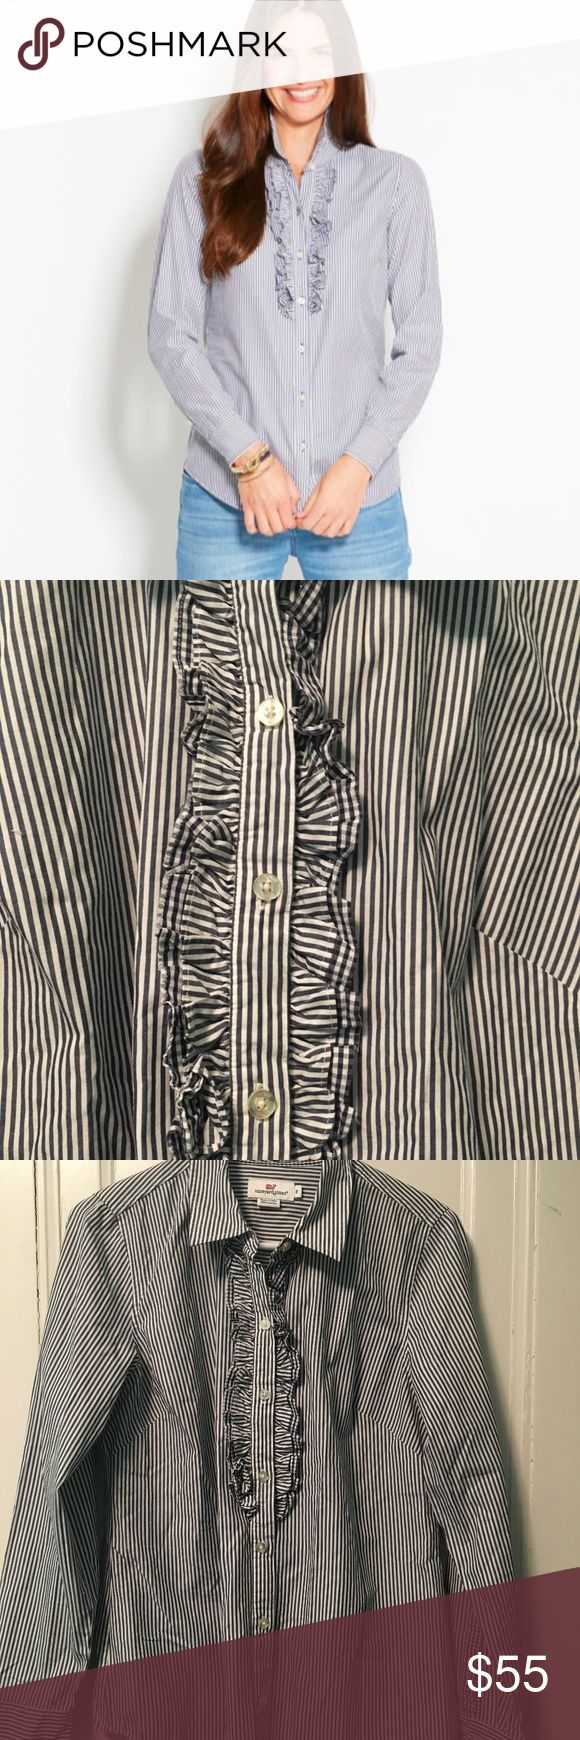 Vineyard Vines Striped Ruffle Oxford Shirt In great condition, like new. Navy stripes. Blue whale detailing. 100% cotton. Sizing chart from Vineyard Vines website under womens is in photos. Vineyard Vines Tops Button Down Shirts